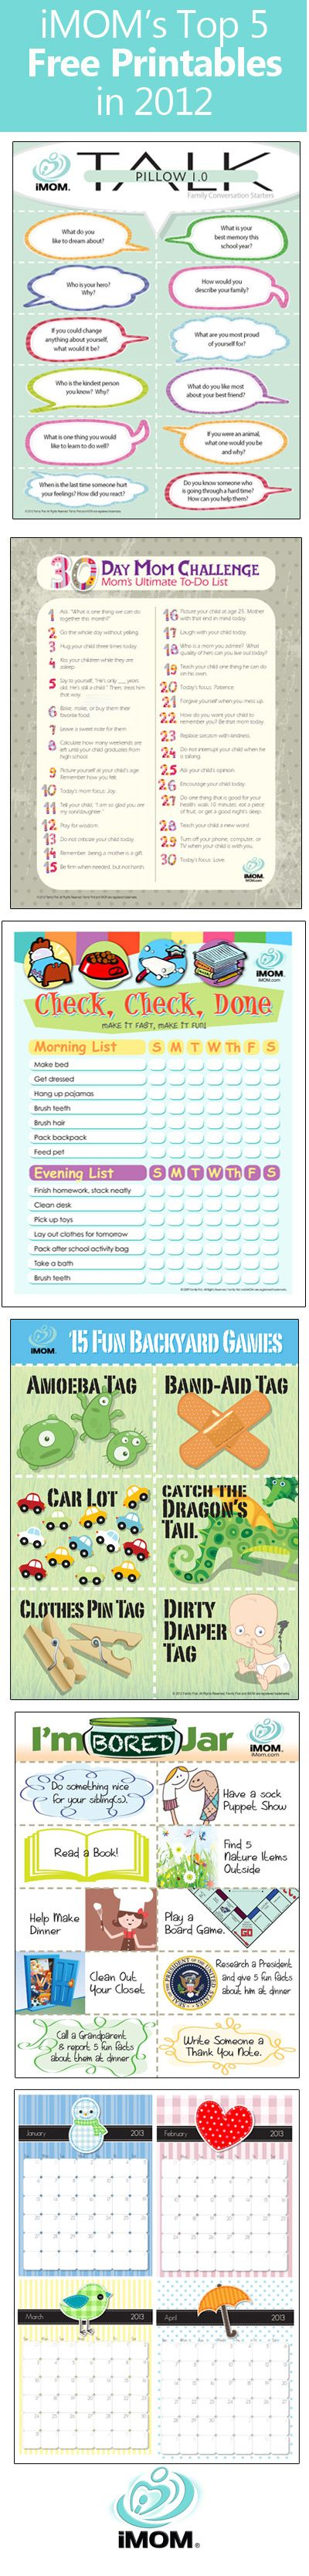 iMOM's Top 5 Free Printables in 2012  iMOM has over 200 printables to help moms! These are Great! imom.com/tools/